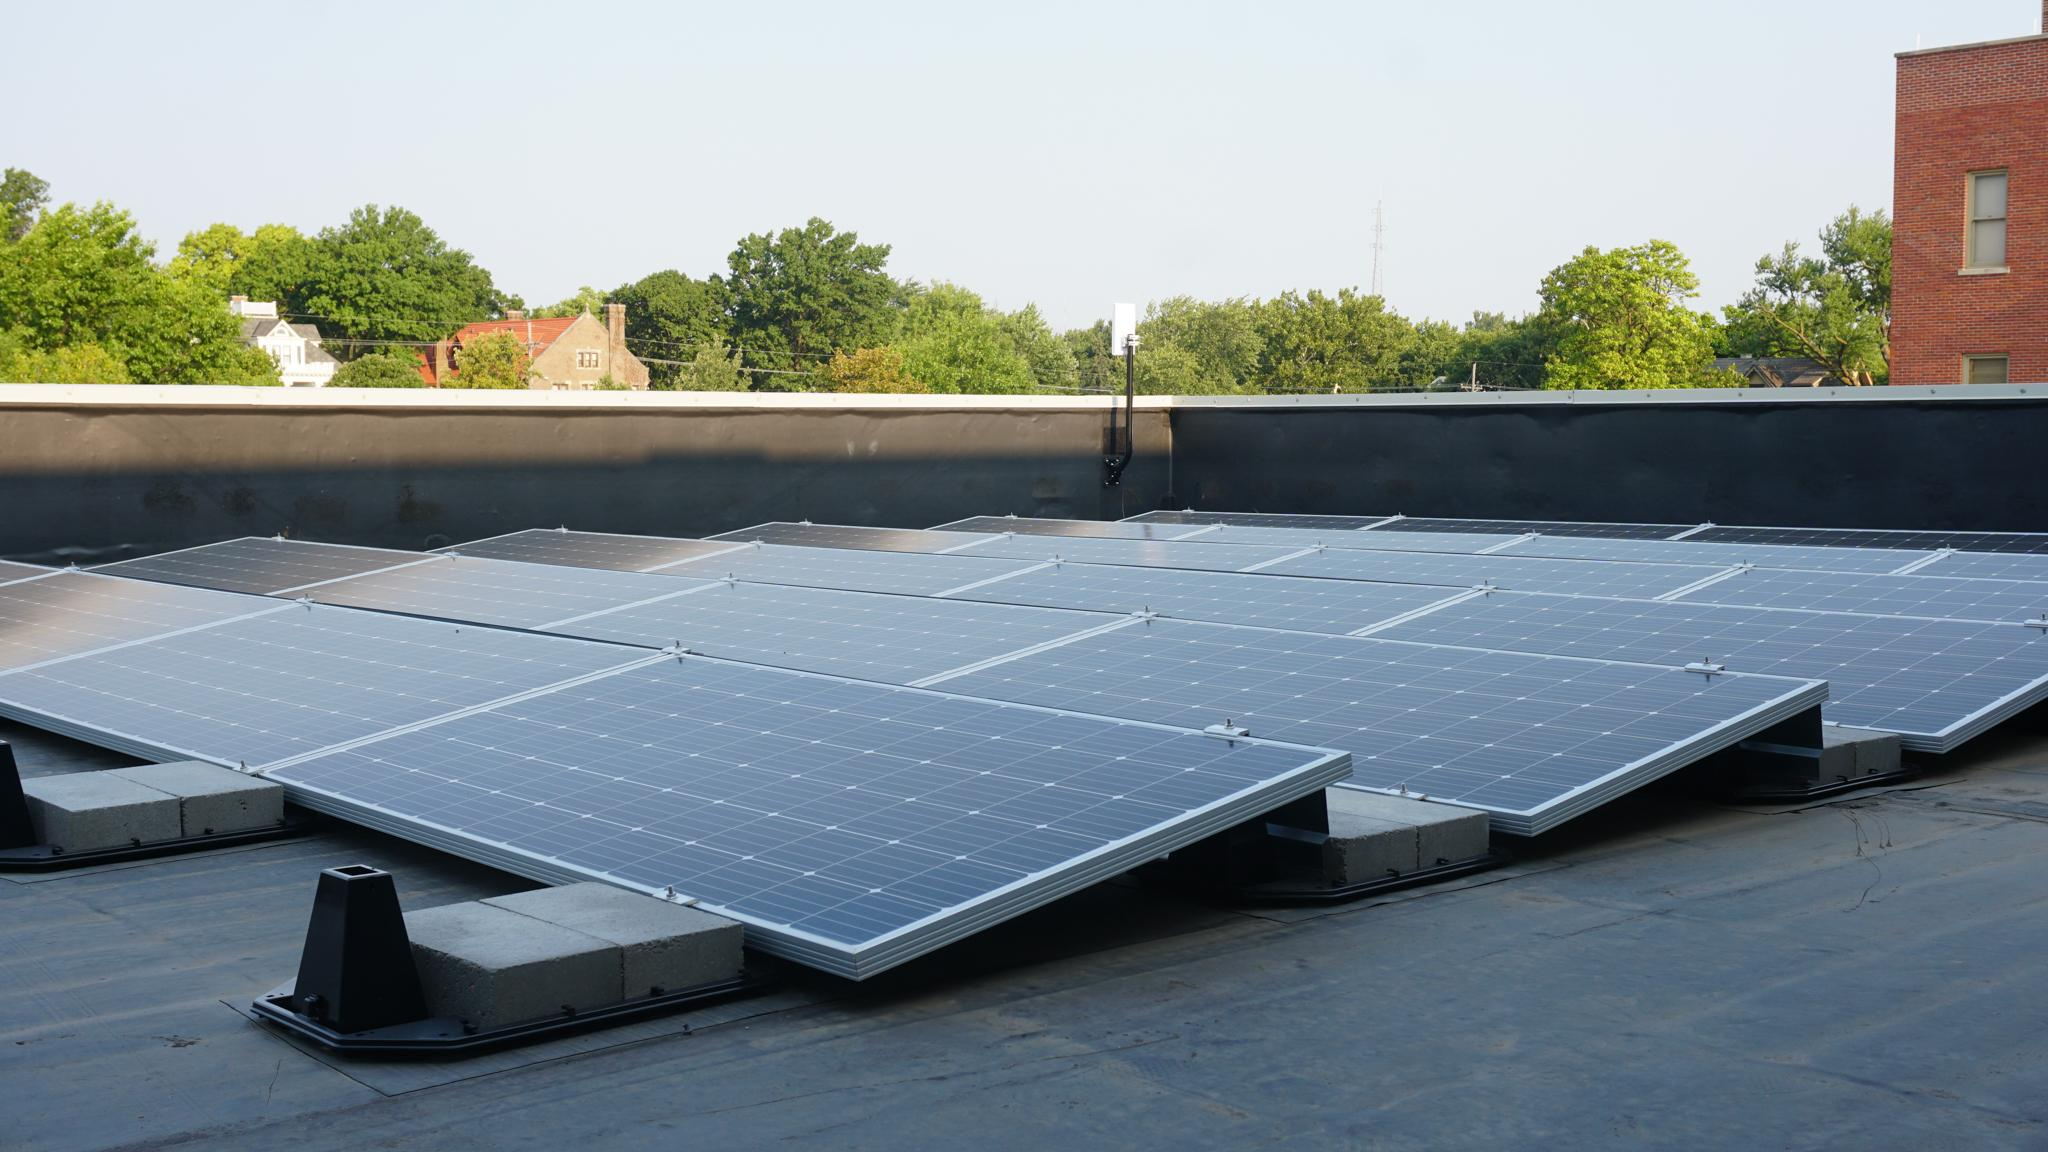 Duchesne Academy solar panels on the school's roof at 3601 Burt St. in Omaha.